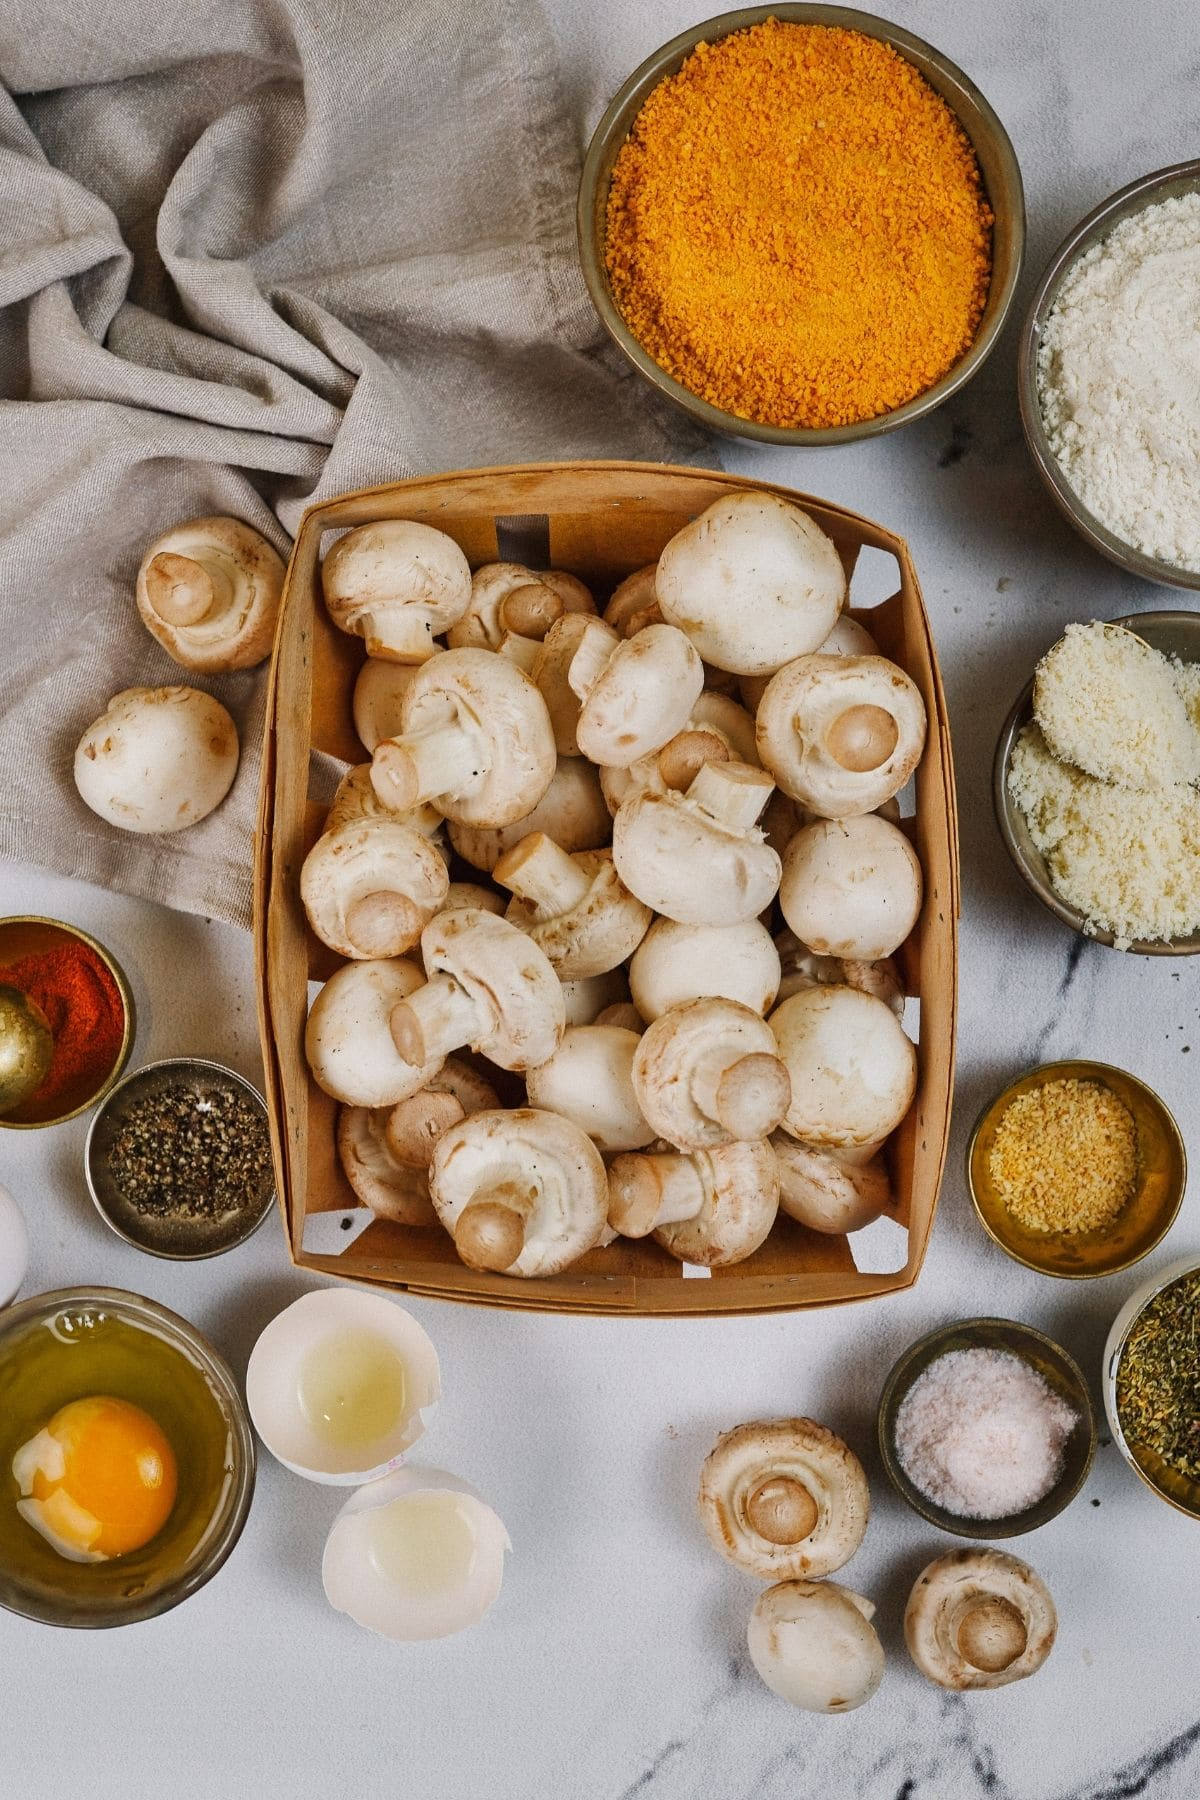 Mushrooms in basket in center of table surrounded by ingredients